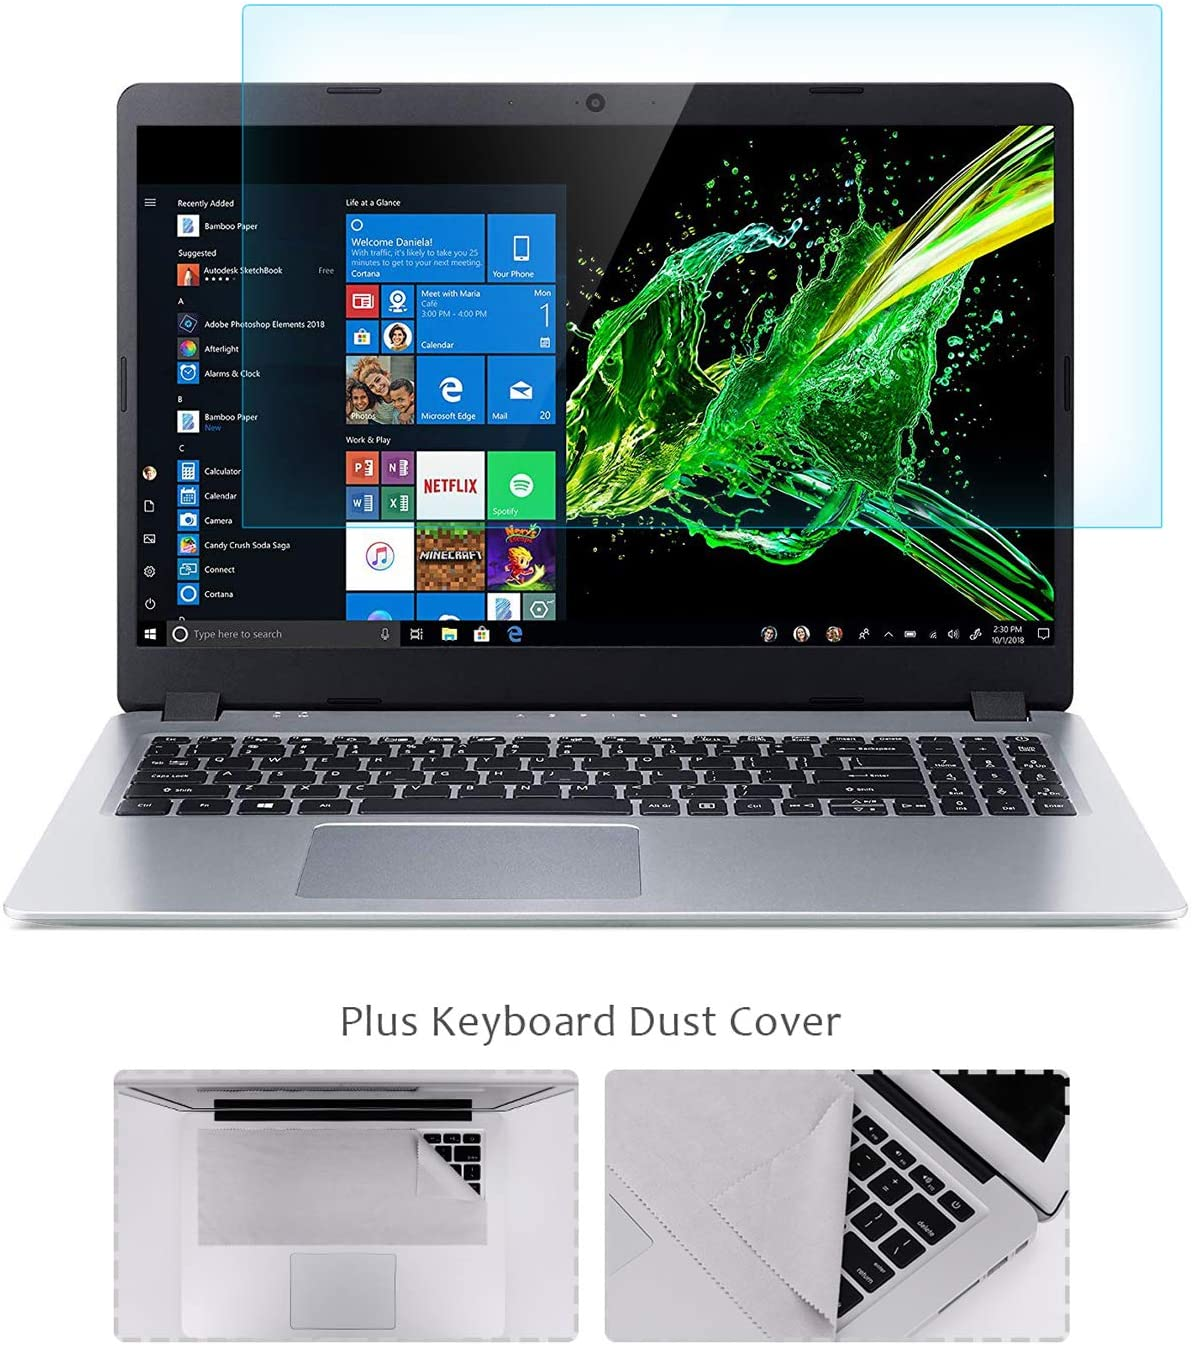 "FORITO 15.6"" Laptop Tempered Glass Screen Protector Compatible with 15.6"" HP/DELL/Asus/Acer/Sony/Samsung/Lenovo/Toshiba/Razer 16:9 Display, with Fabric Keyboard Screen Protector, Bubble Free"